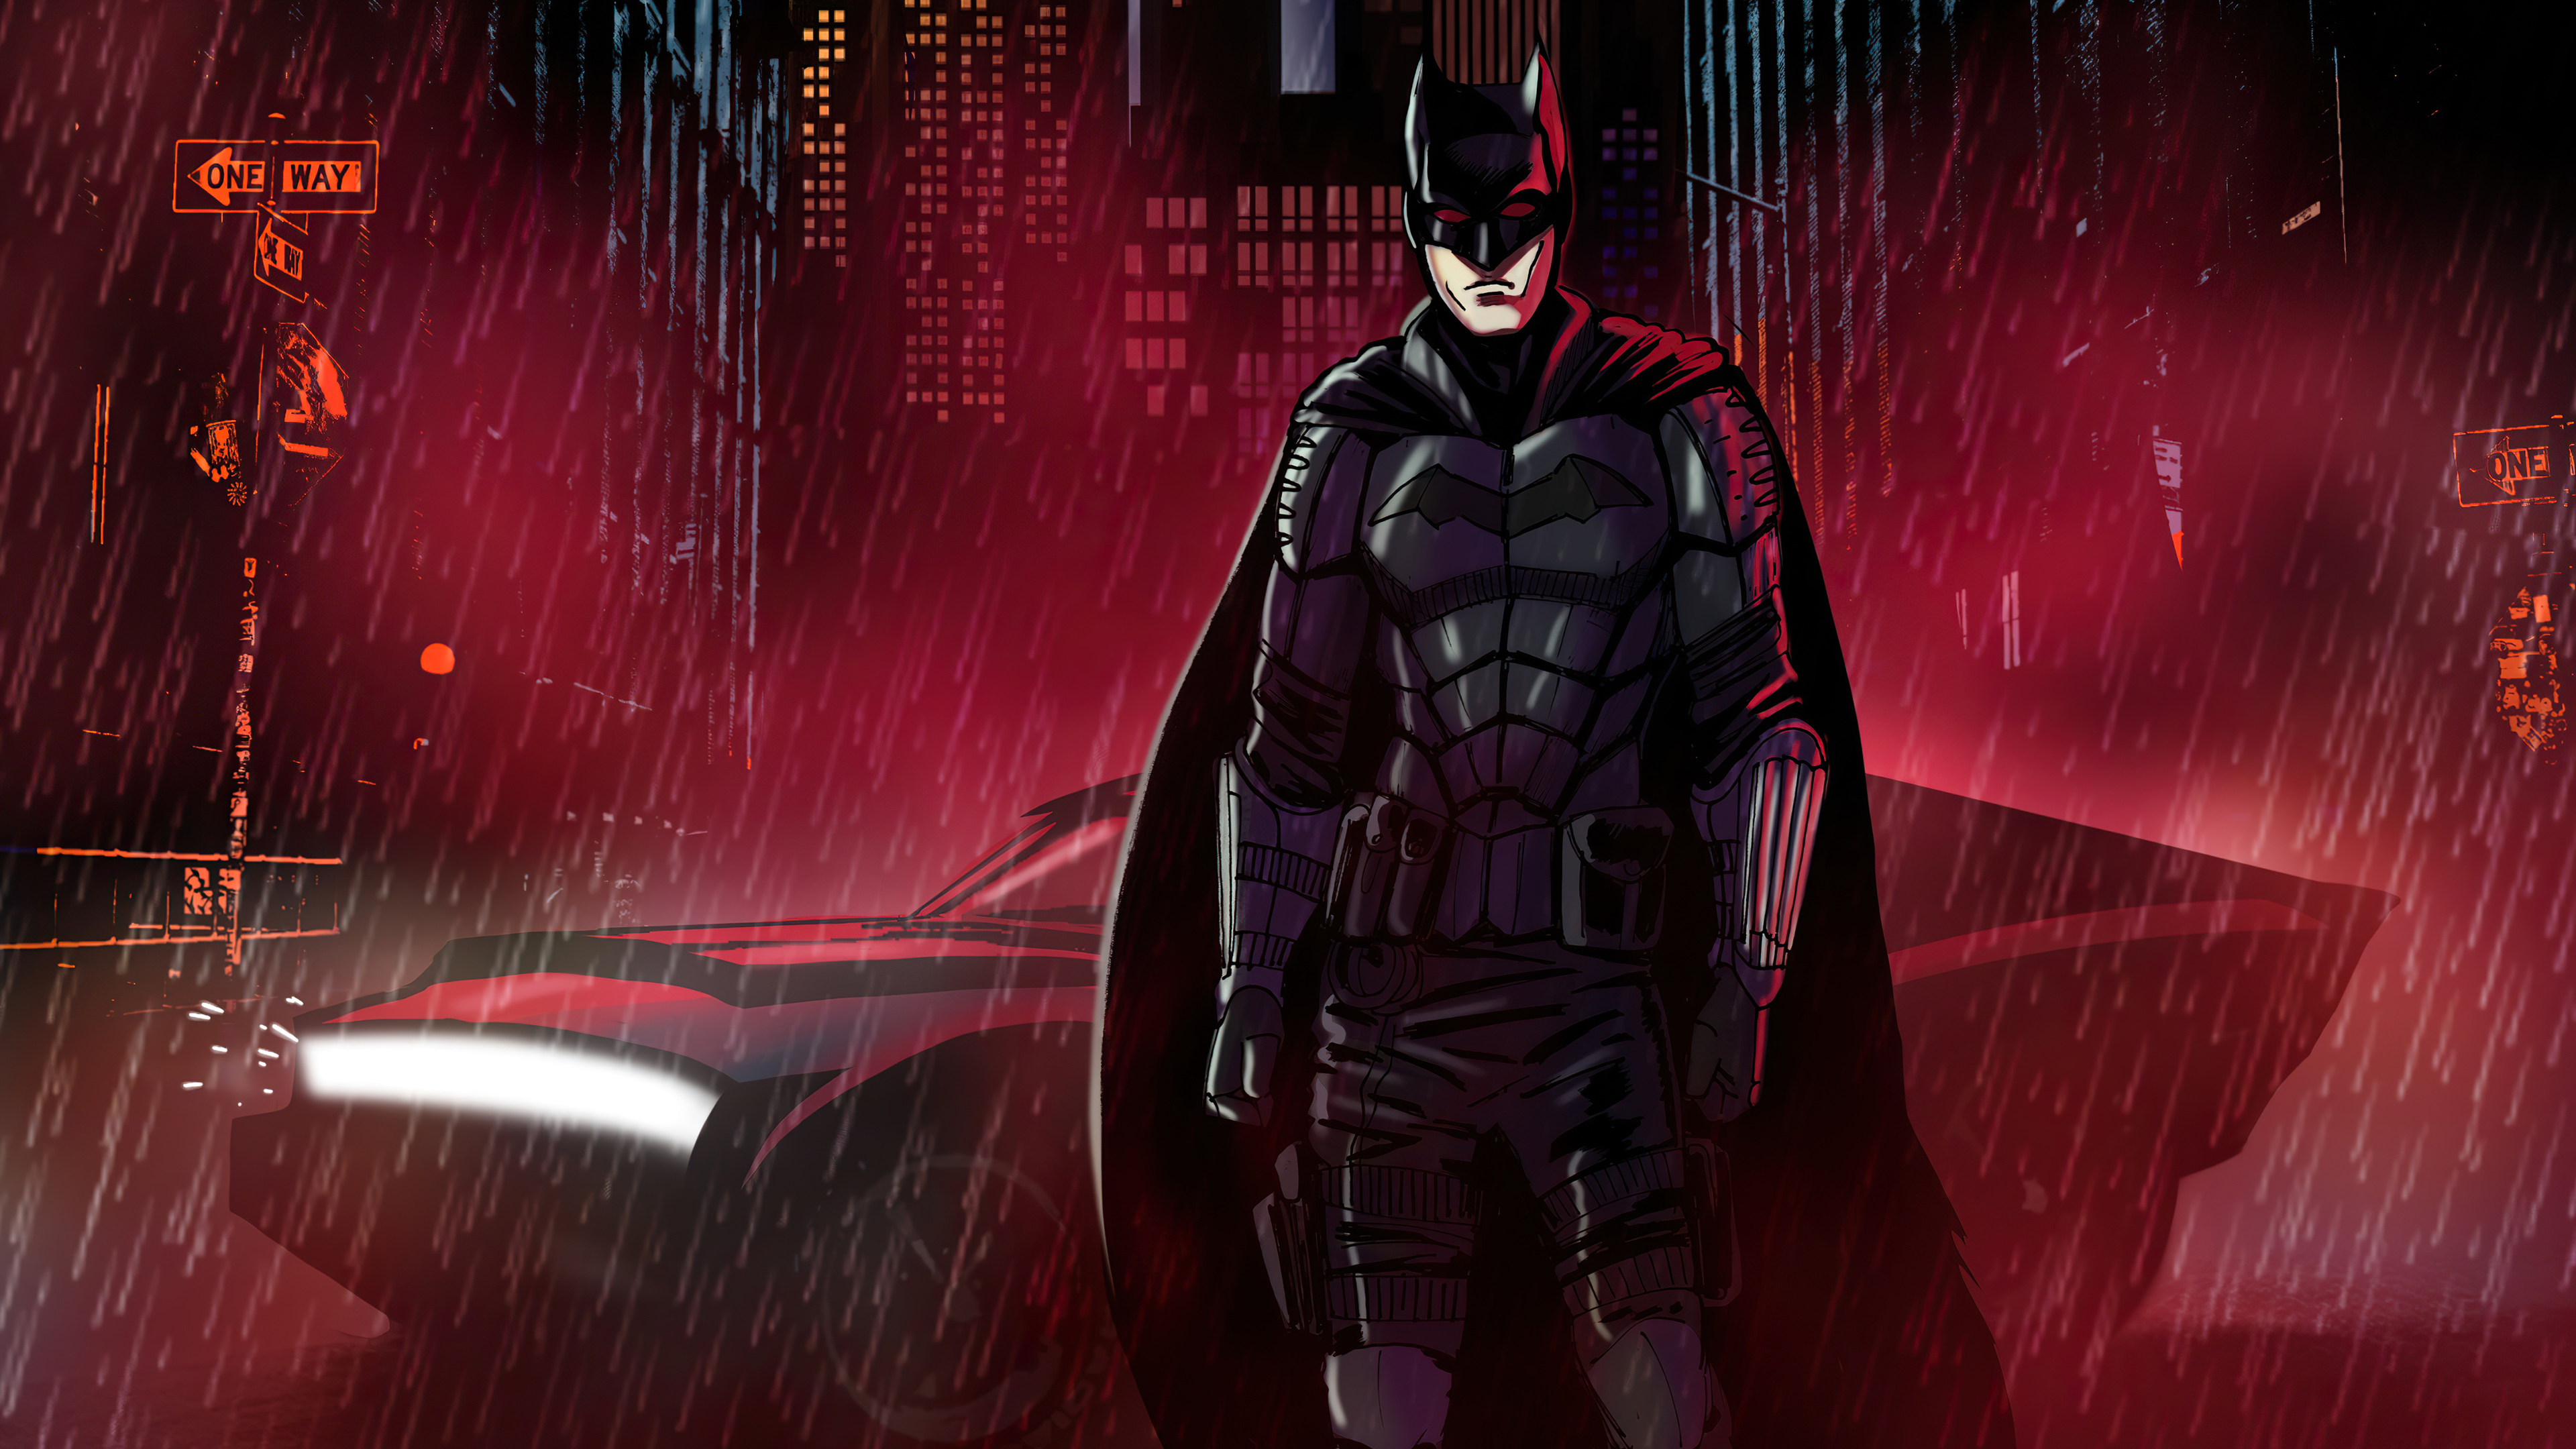 Wallpaper Batman Night Cyberpunk